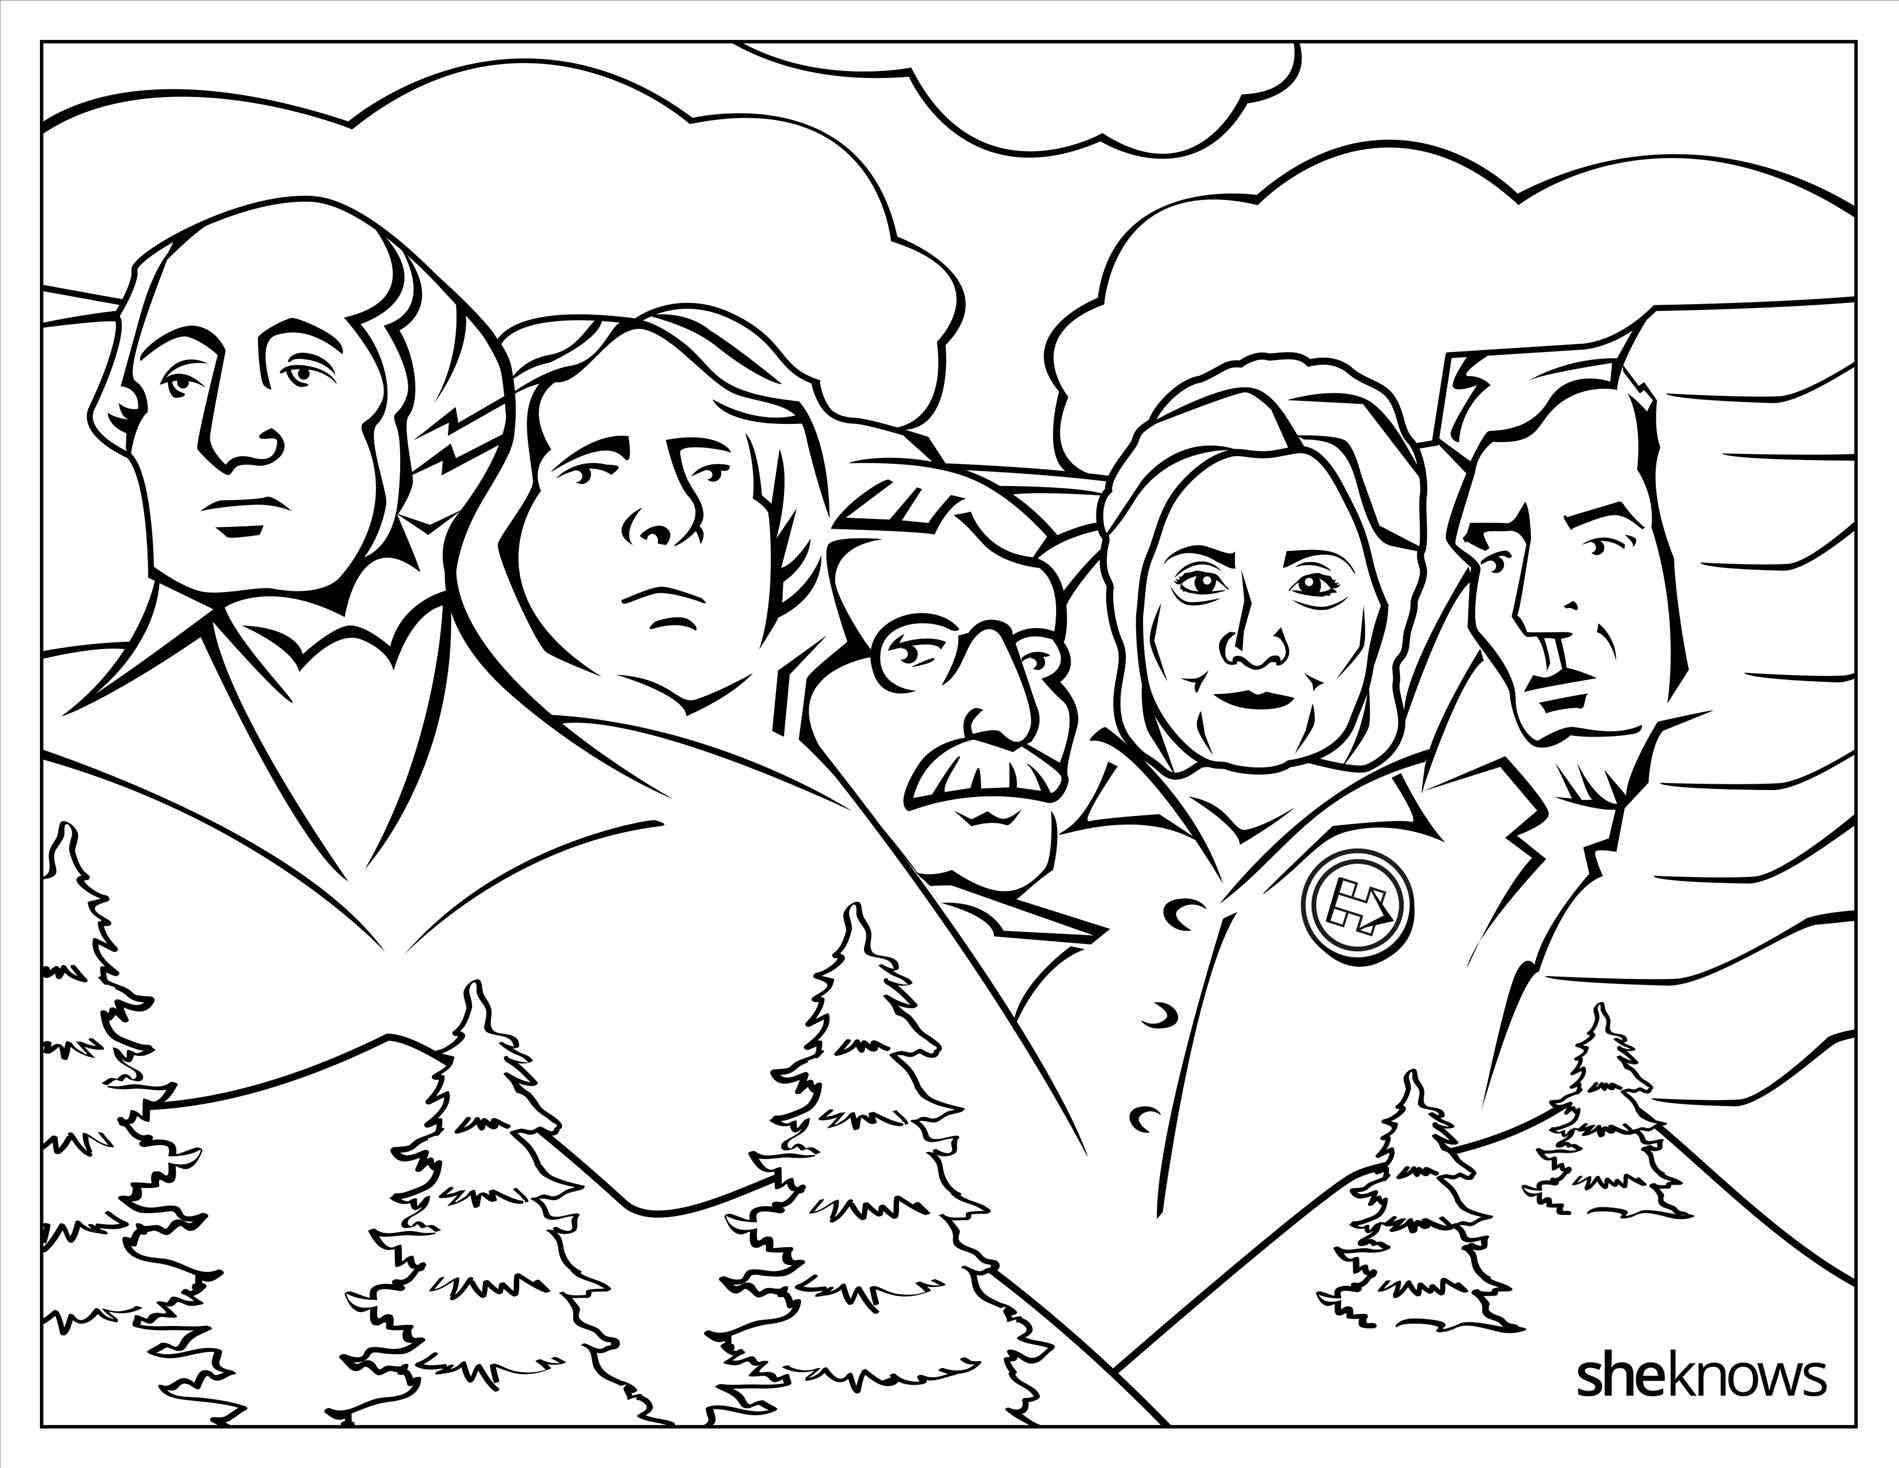 Hillary Coloring Pages Download Of Hillary Clinton Coloring Pages Collection to Print